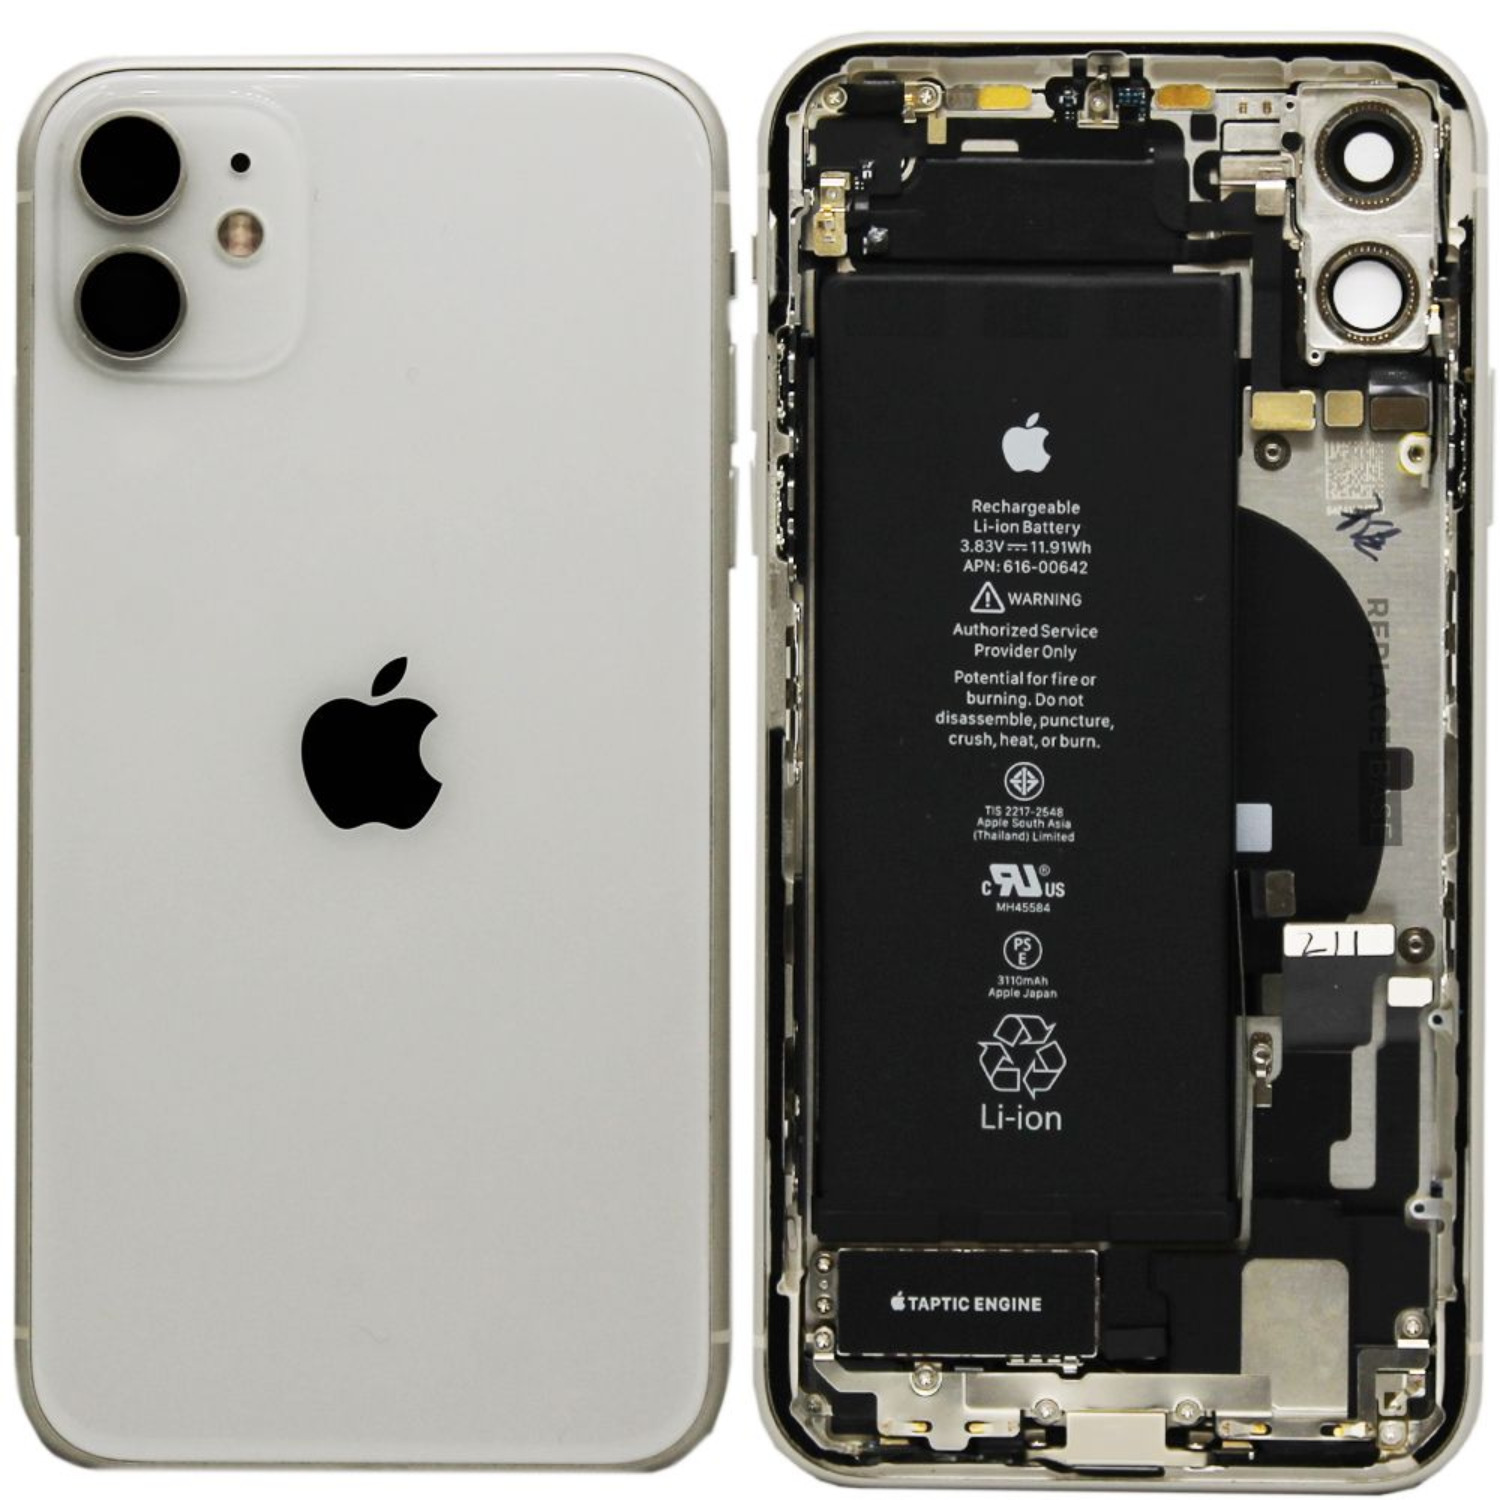 Genuine iPhone 11 Replacement Rear / Back Housing Assembly With Battery - Original / Pull